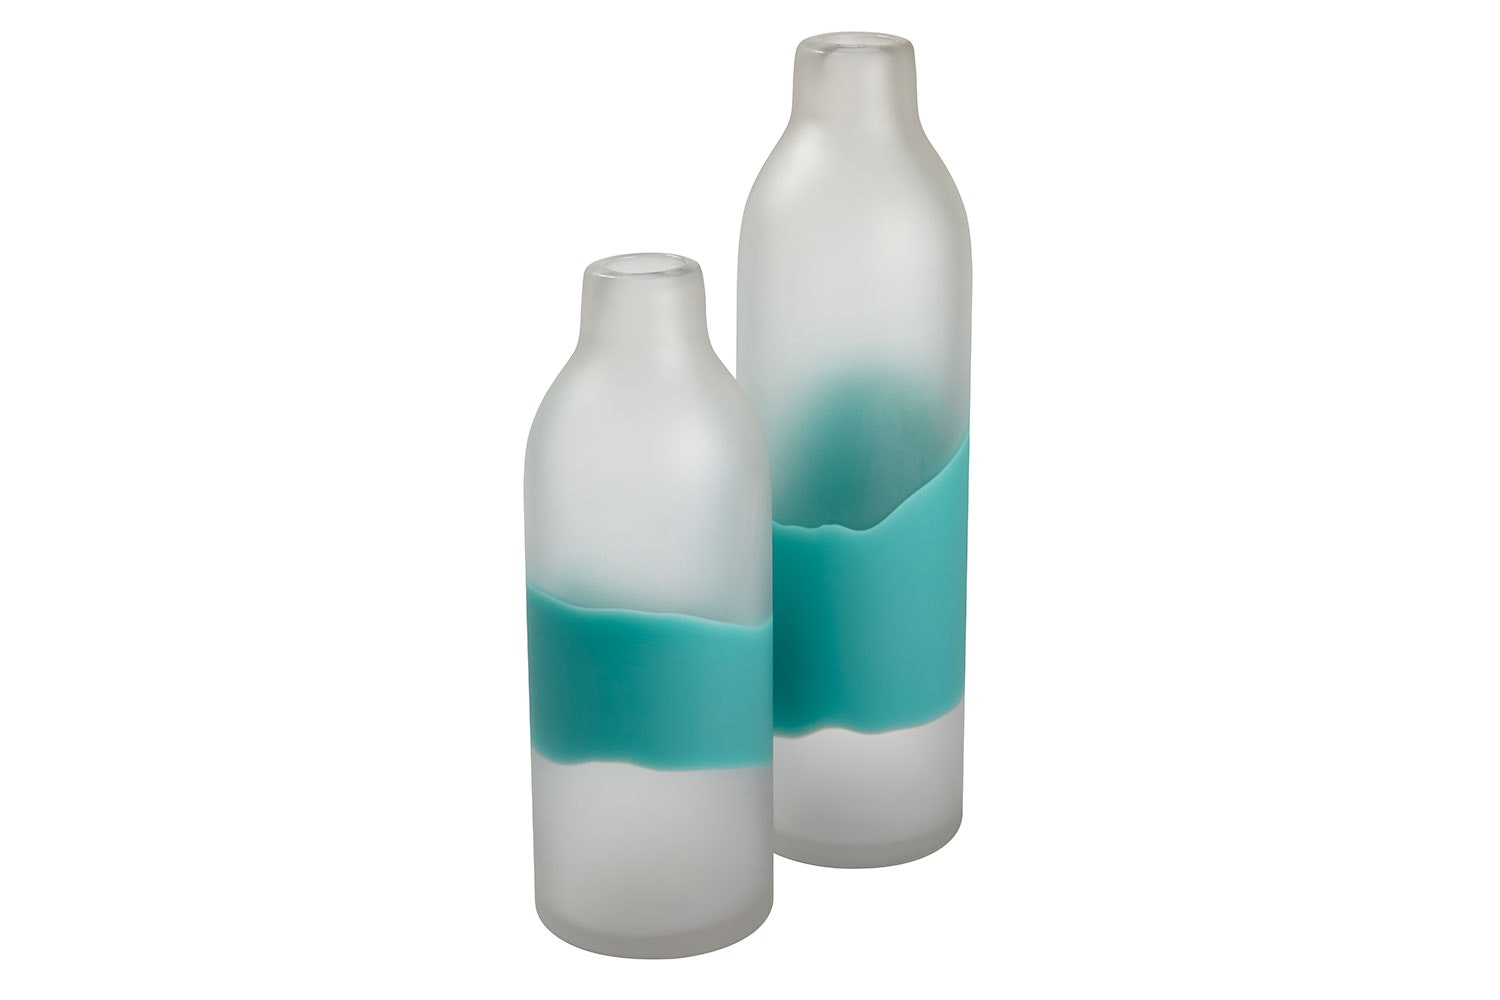 Bodenvase Glas smith glass vase by albi harvey norman zealand